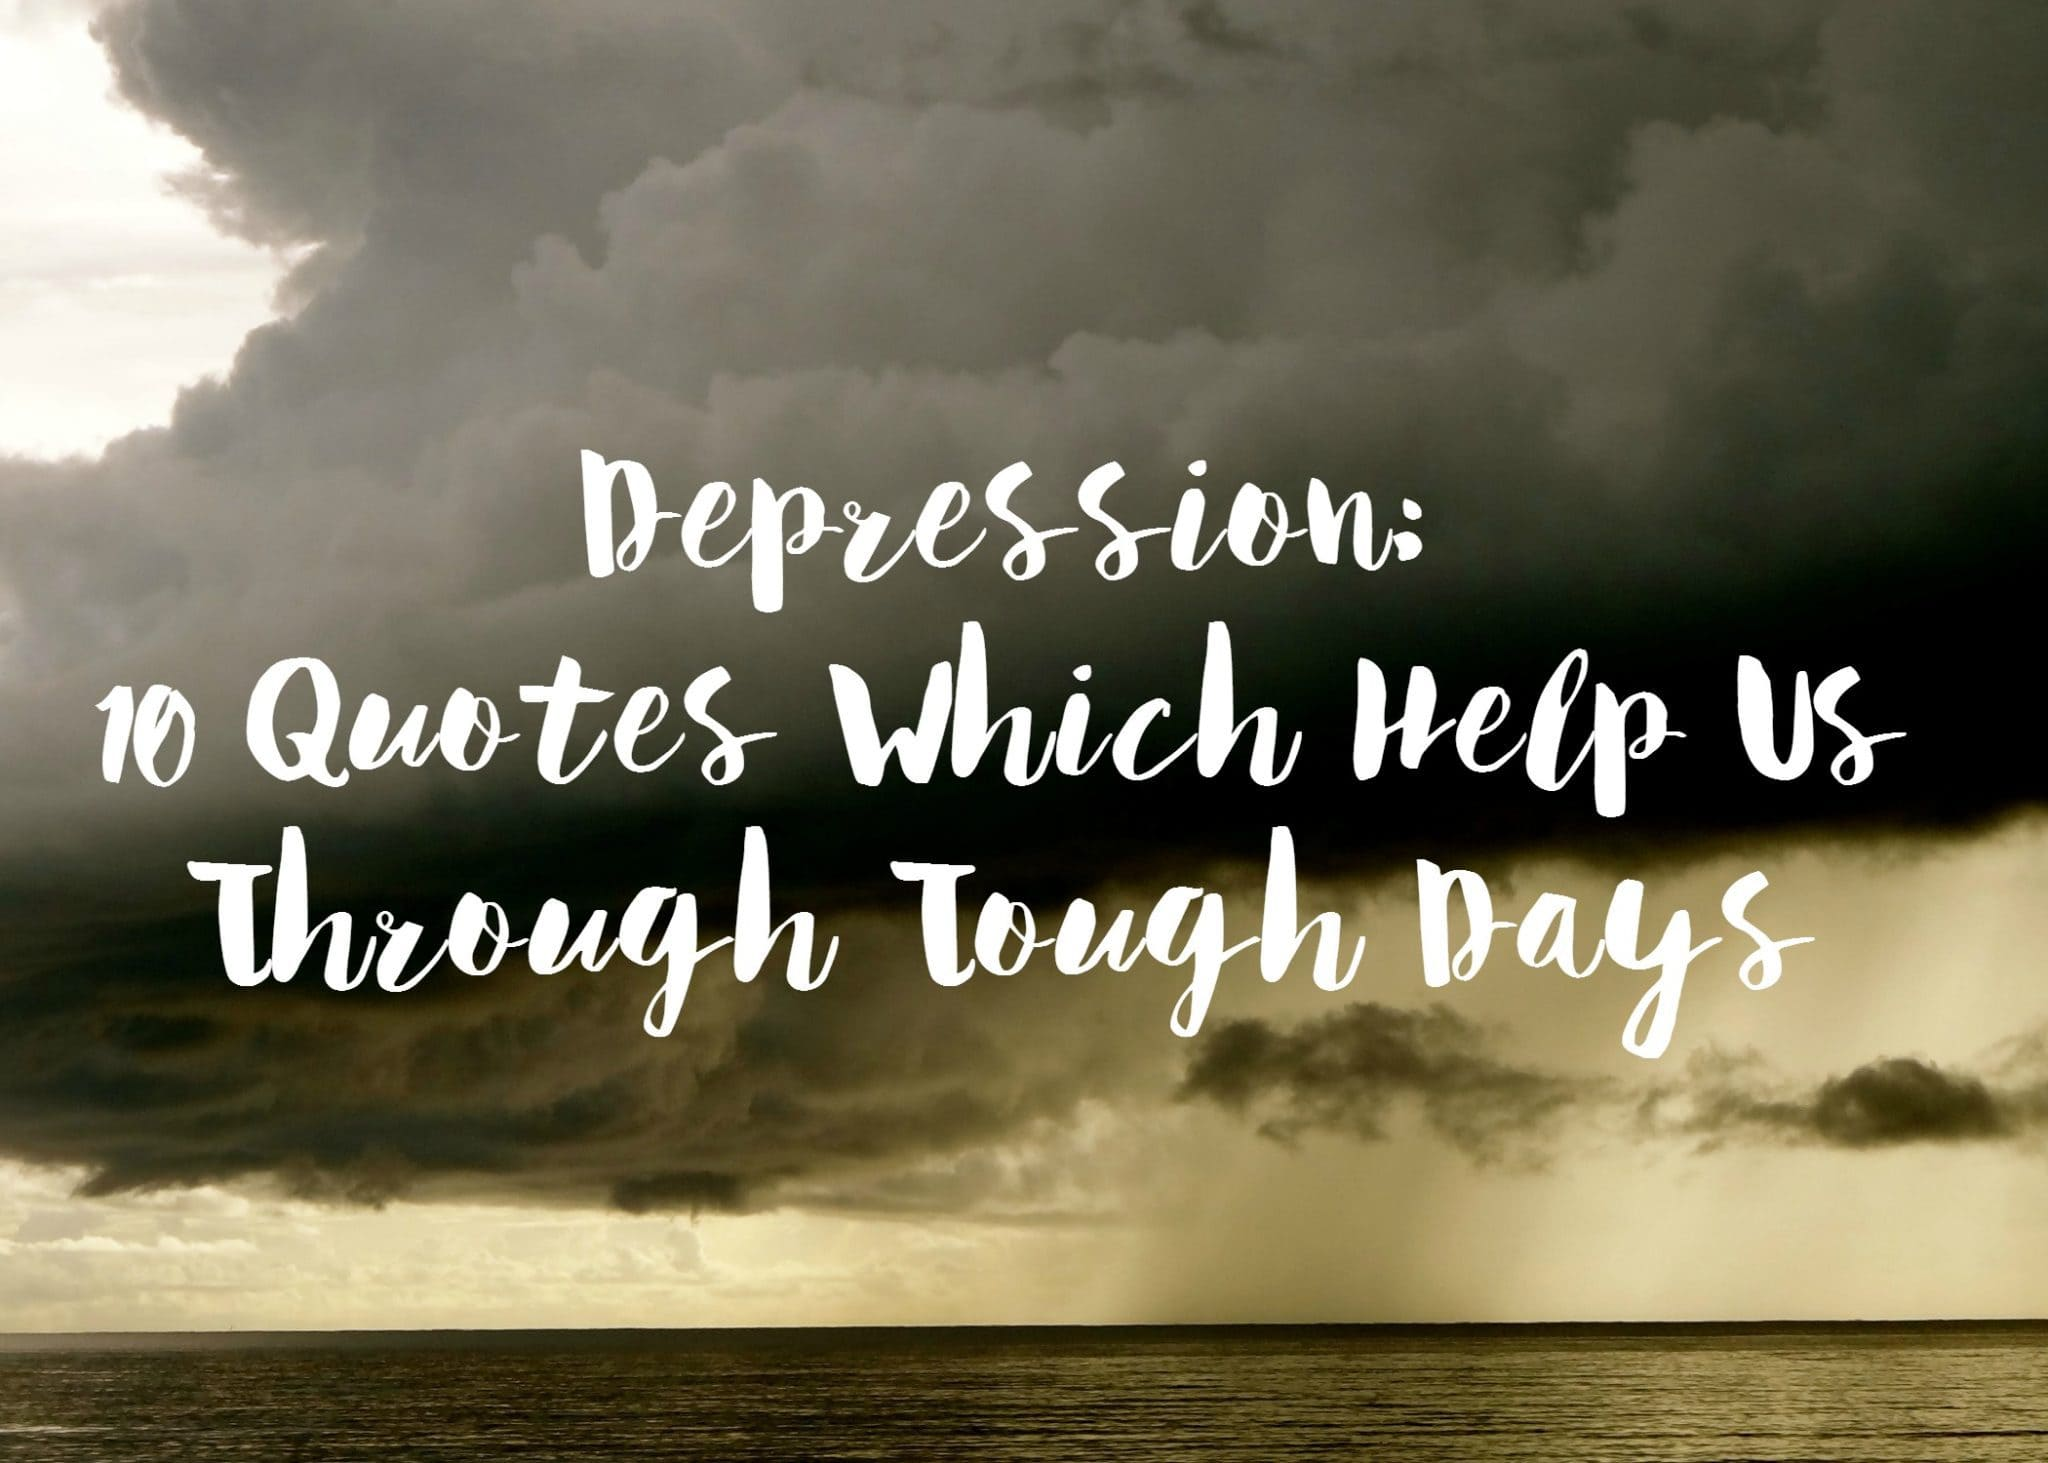 Quotes To Help Depression New Depression 10 Quotes Which Help Us Through Tough Days